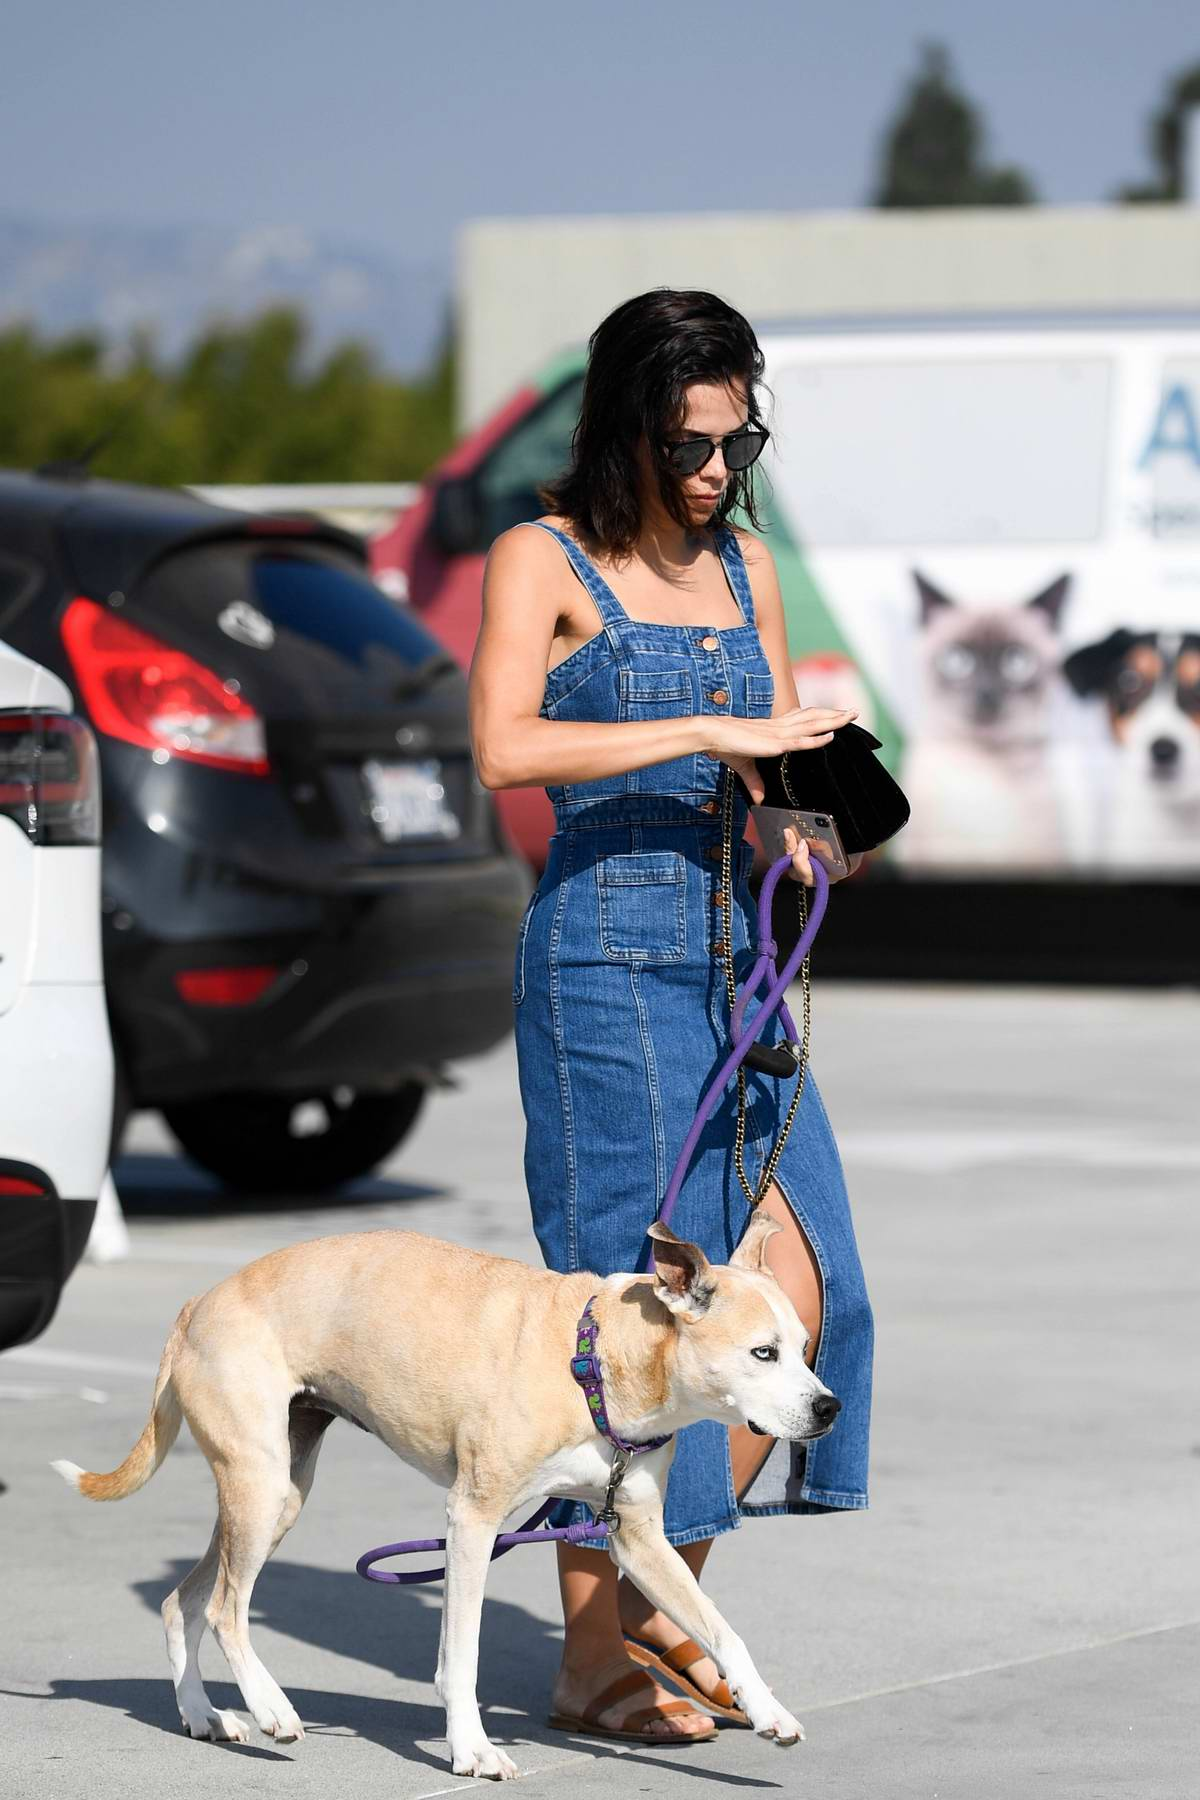 Jenna Dewan wears a denim overall dress as takes her dog out for a walk in Los Angeles